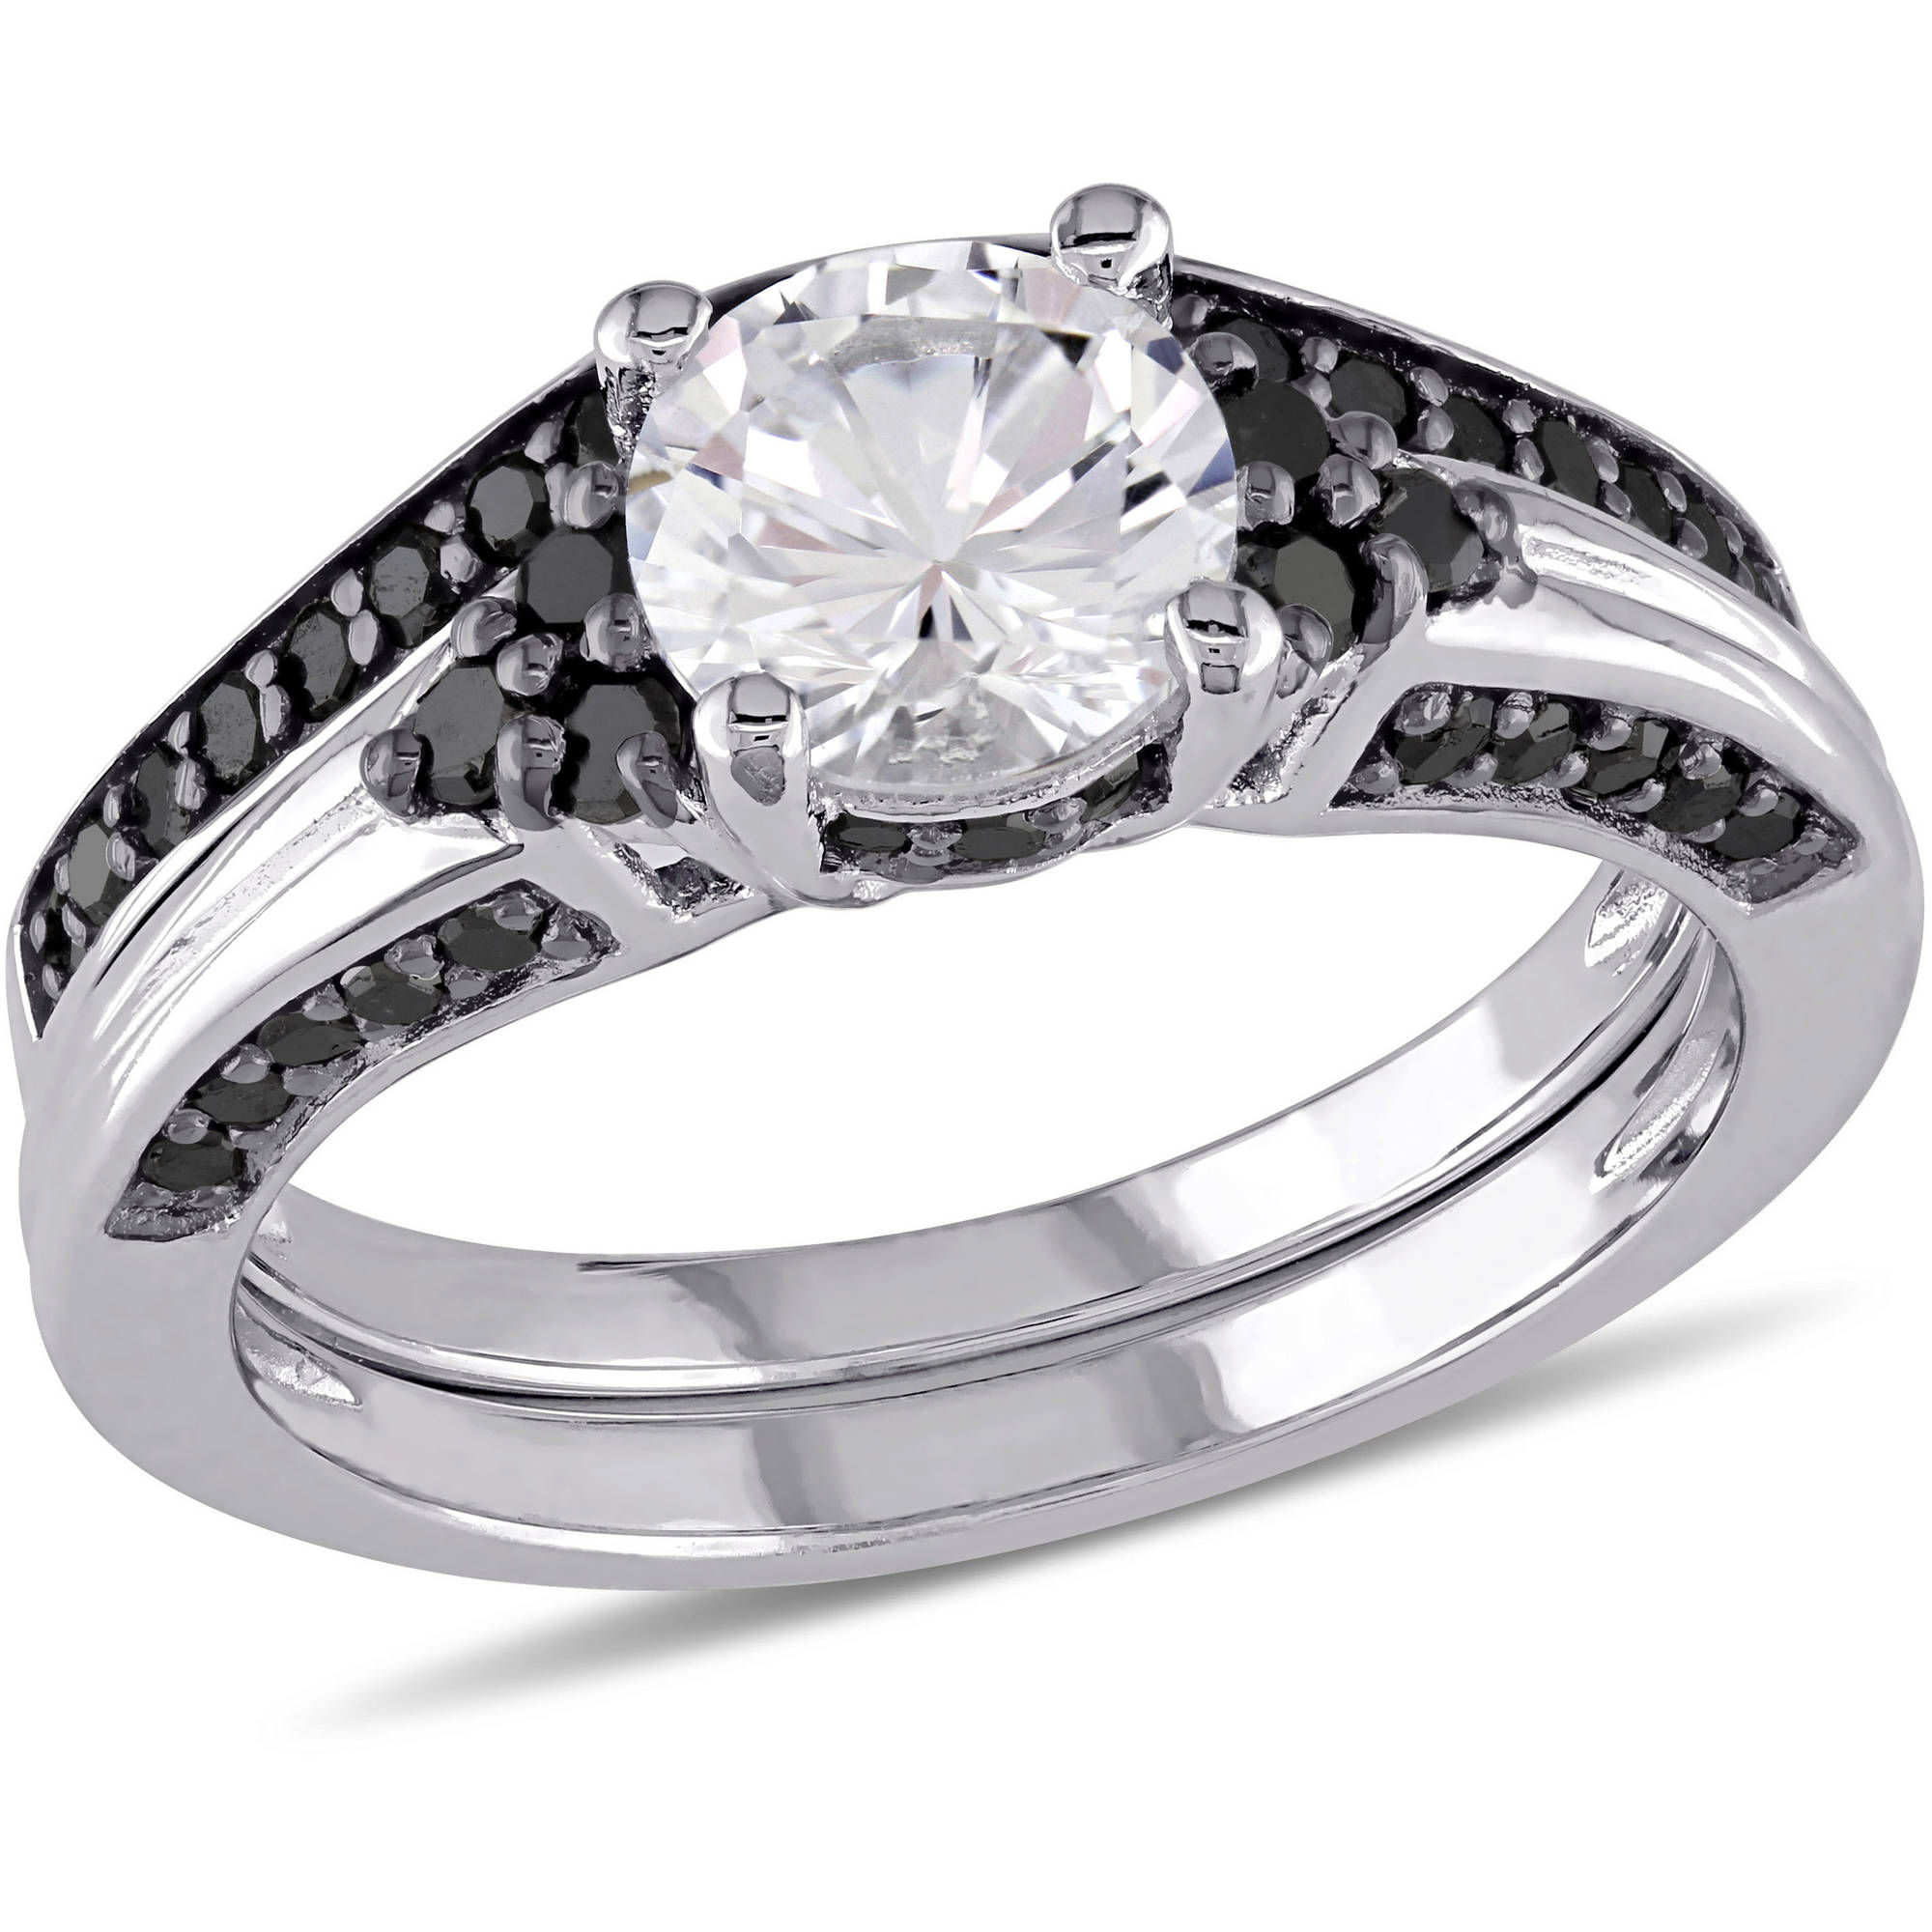 1-3/8 Carat T.G.W. Created White Sapphire and 3/5 Carat T.W. Black Diamond Sterling Silver Bridal Set